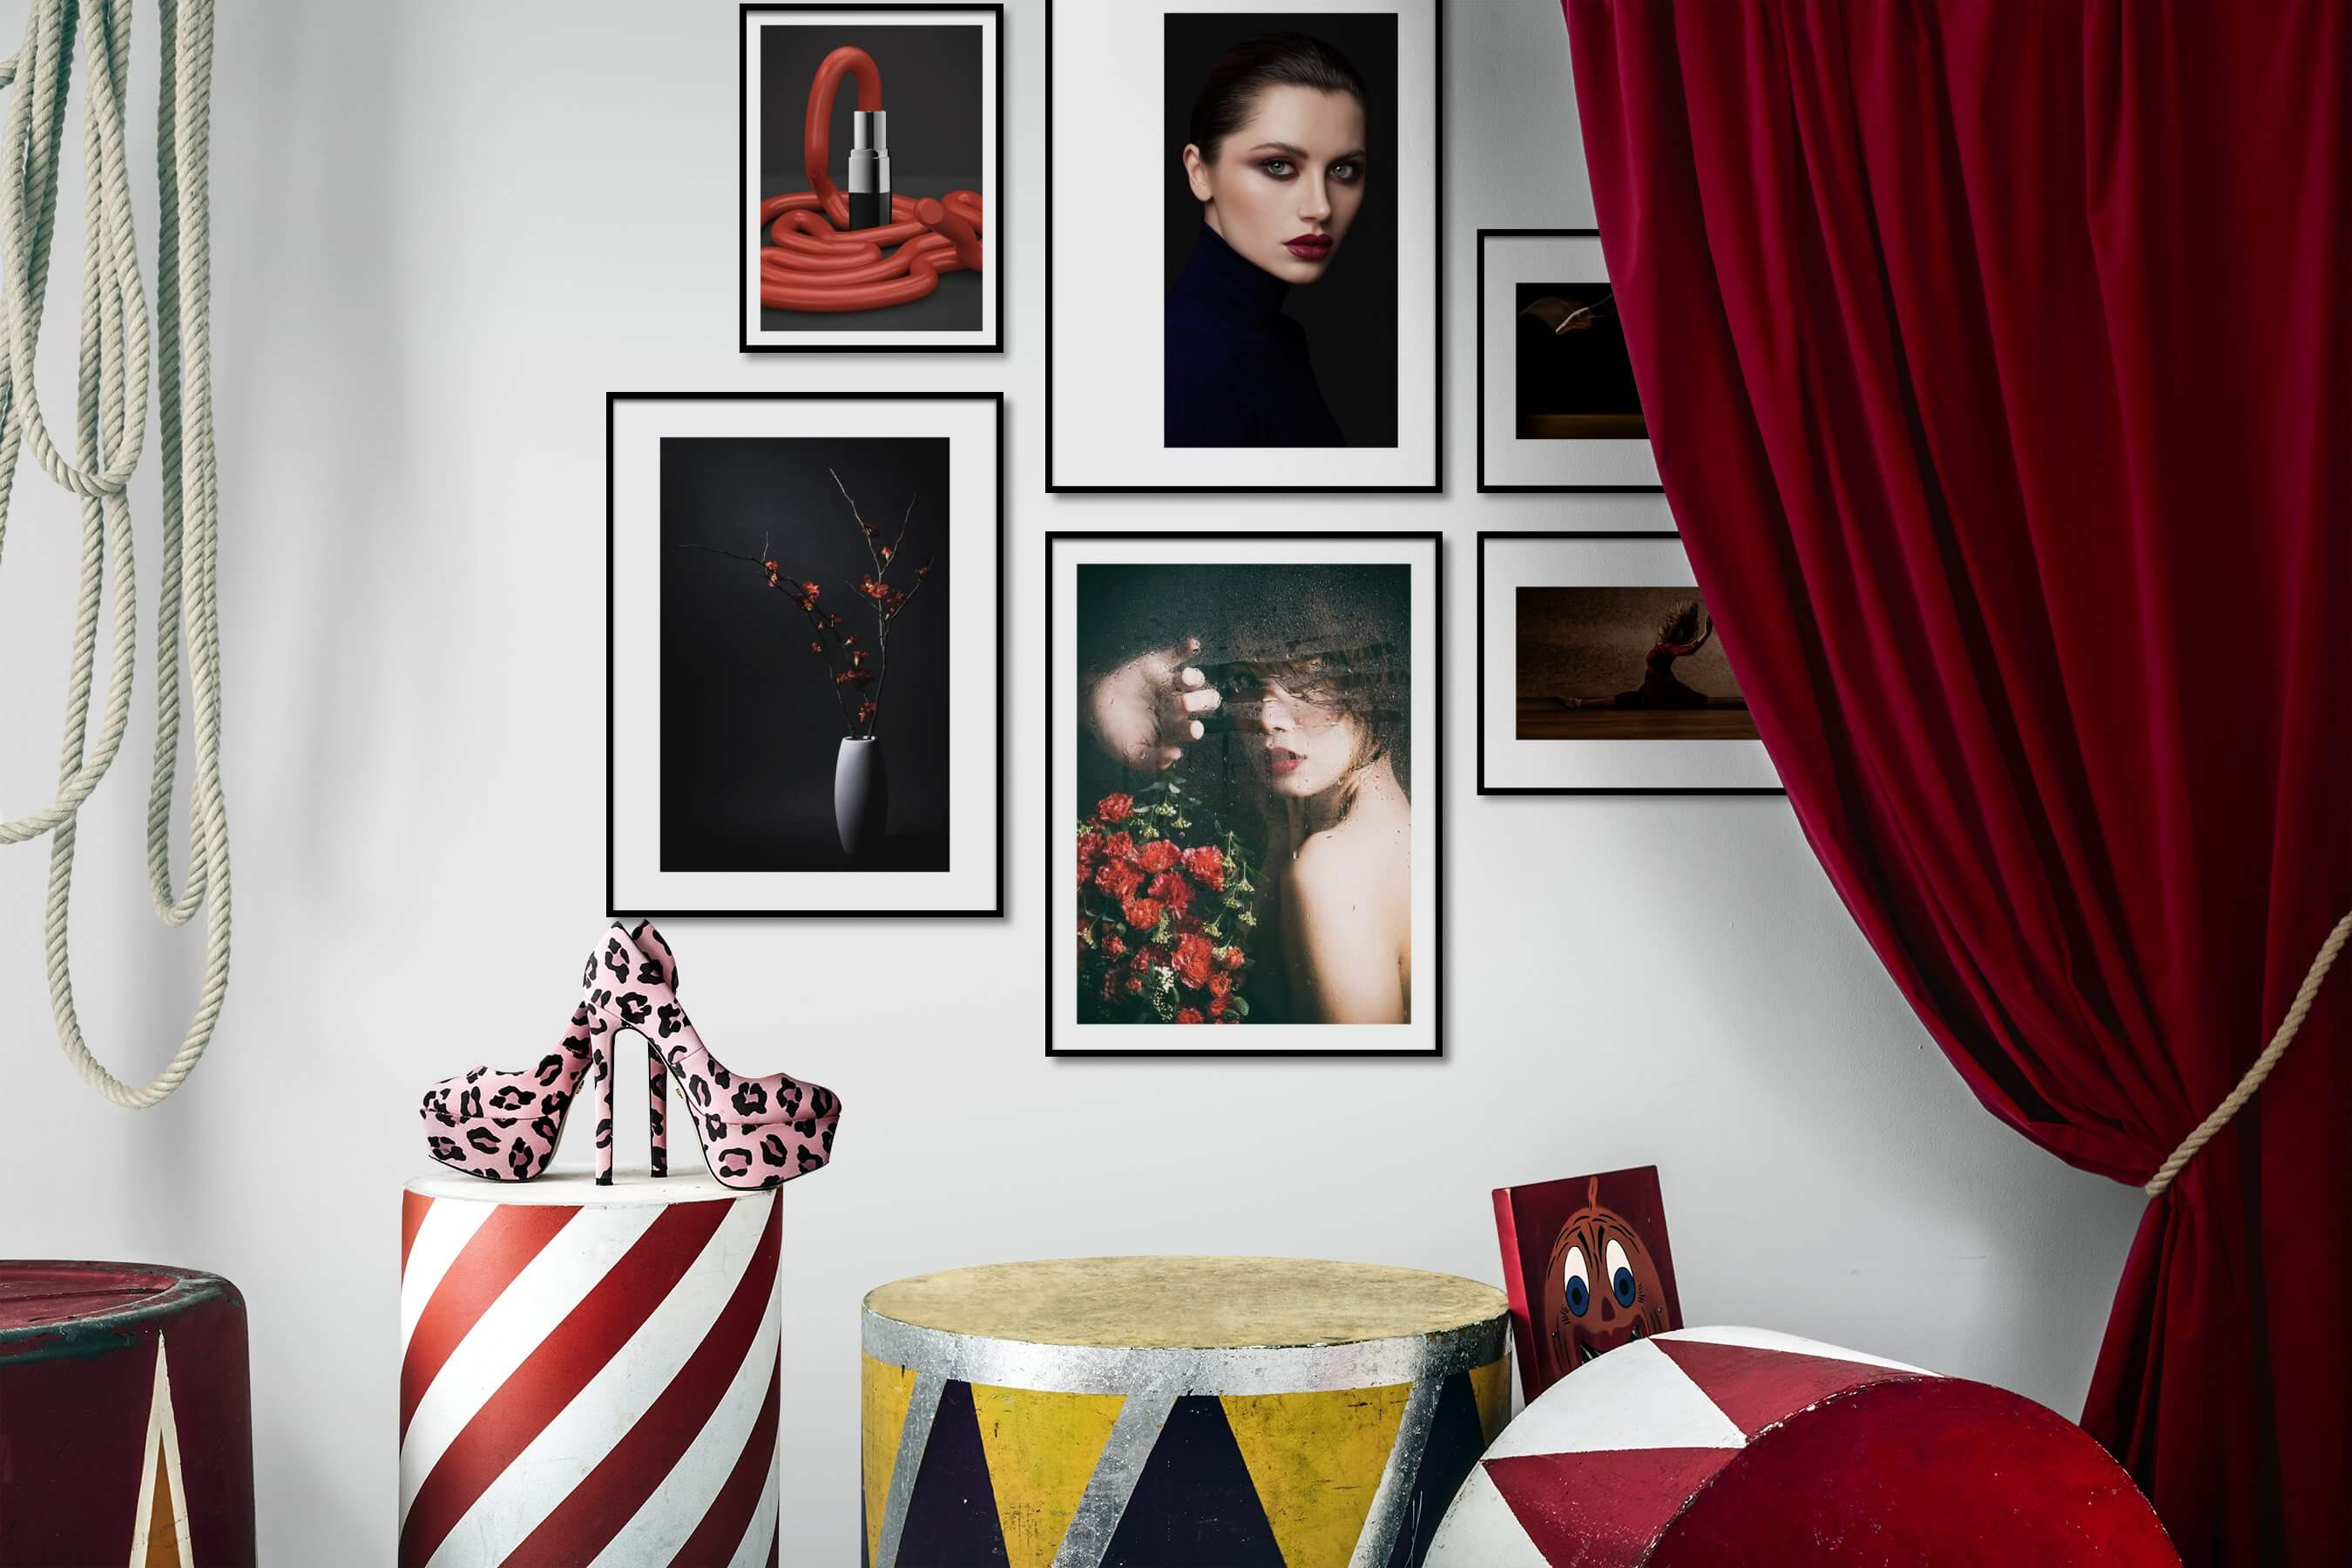 Gallery wall idea with six framed pictures arranged on a wall depicting Fashion & Beauty, For the Moderate, For the Minimalist, and Flowers & Plants